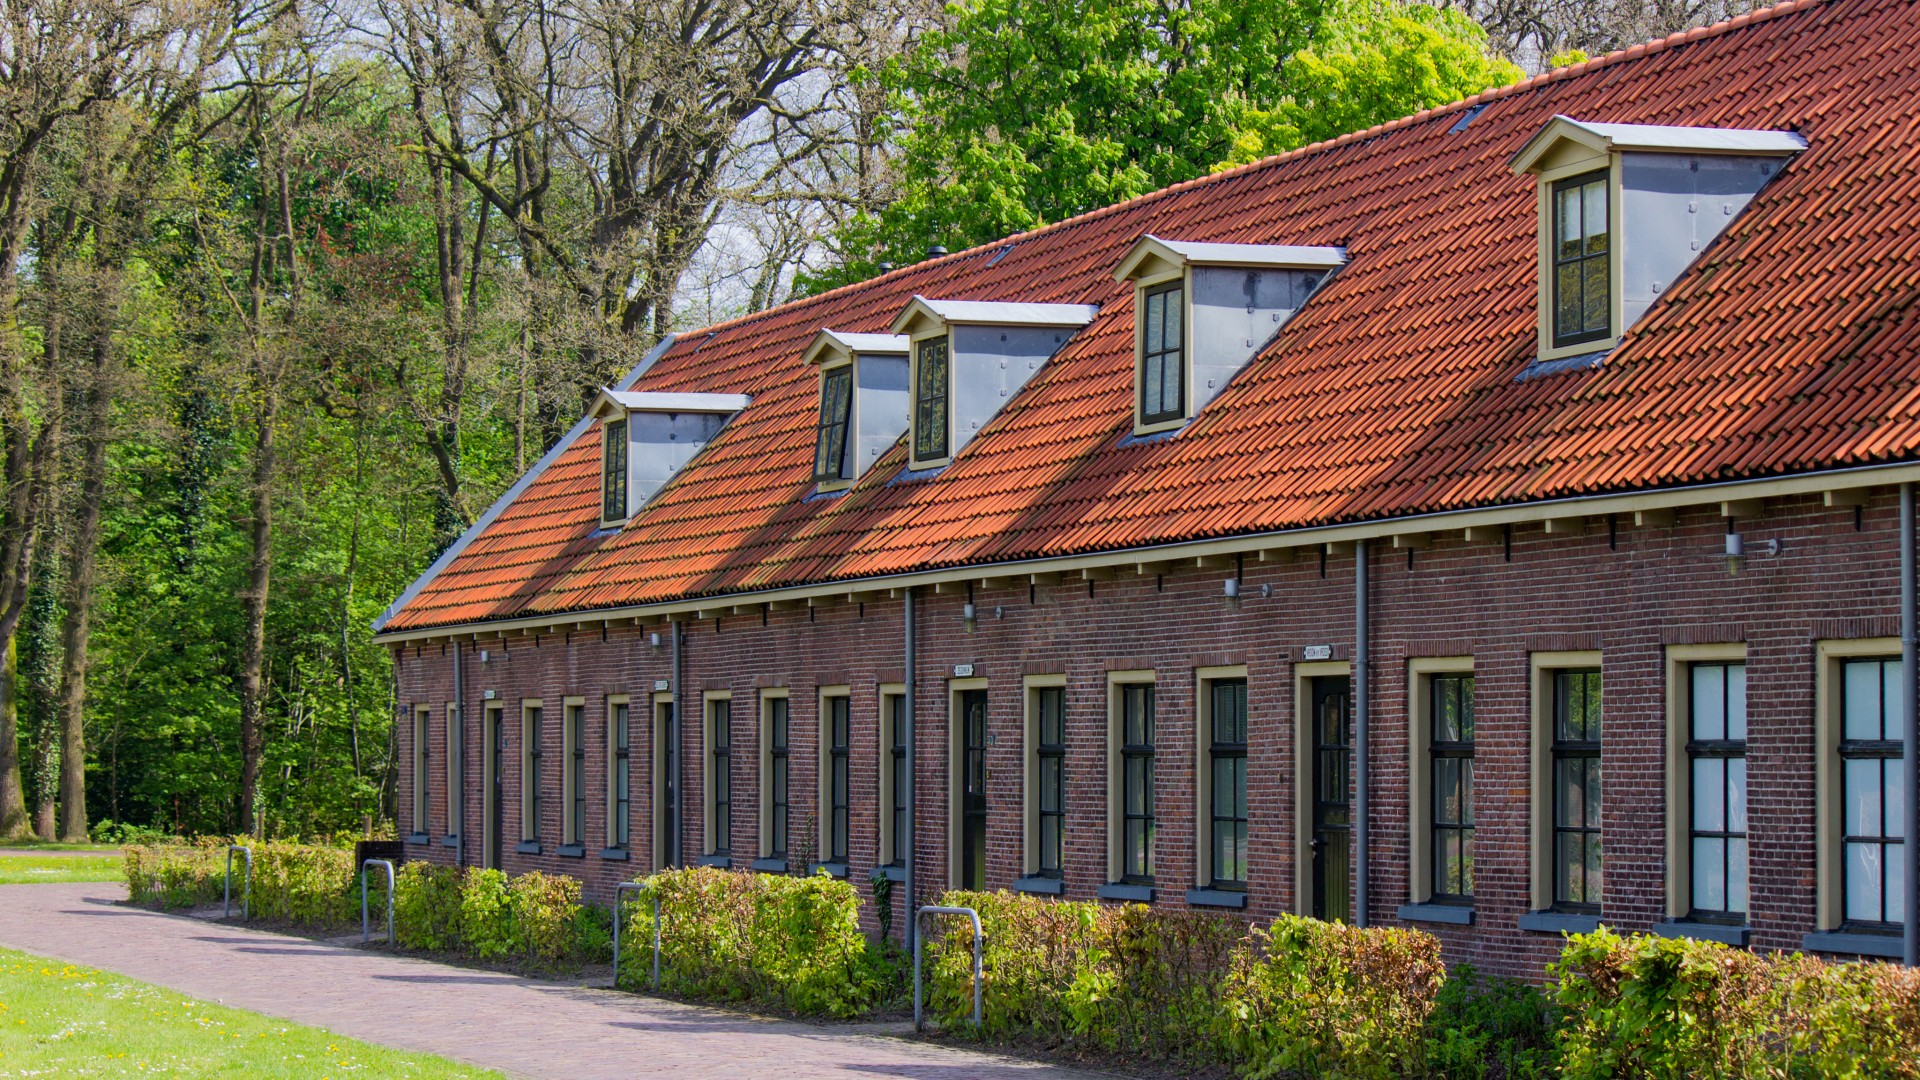 Early 19th Century Prison Complex in Veenhuizen, the Netherlands